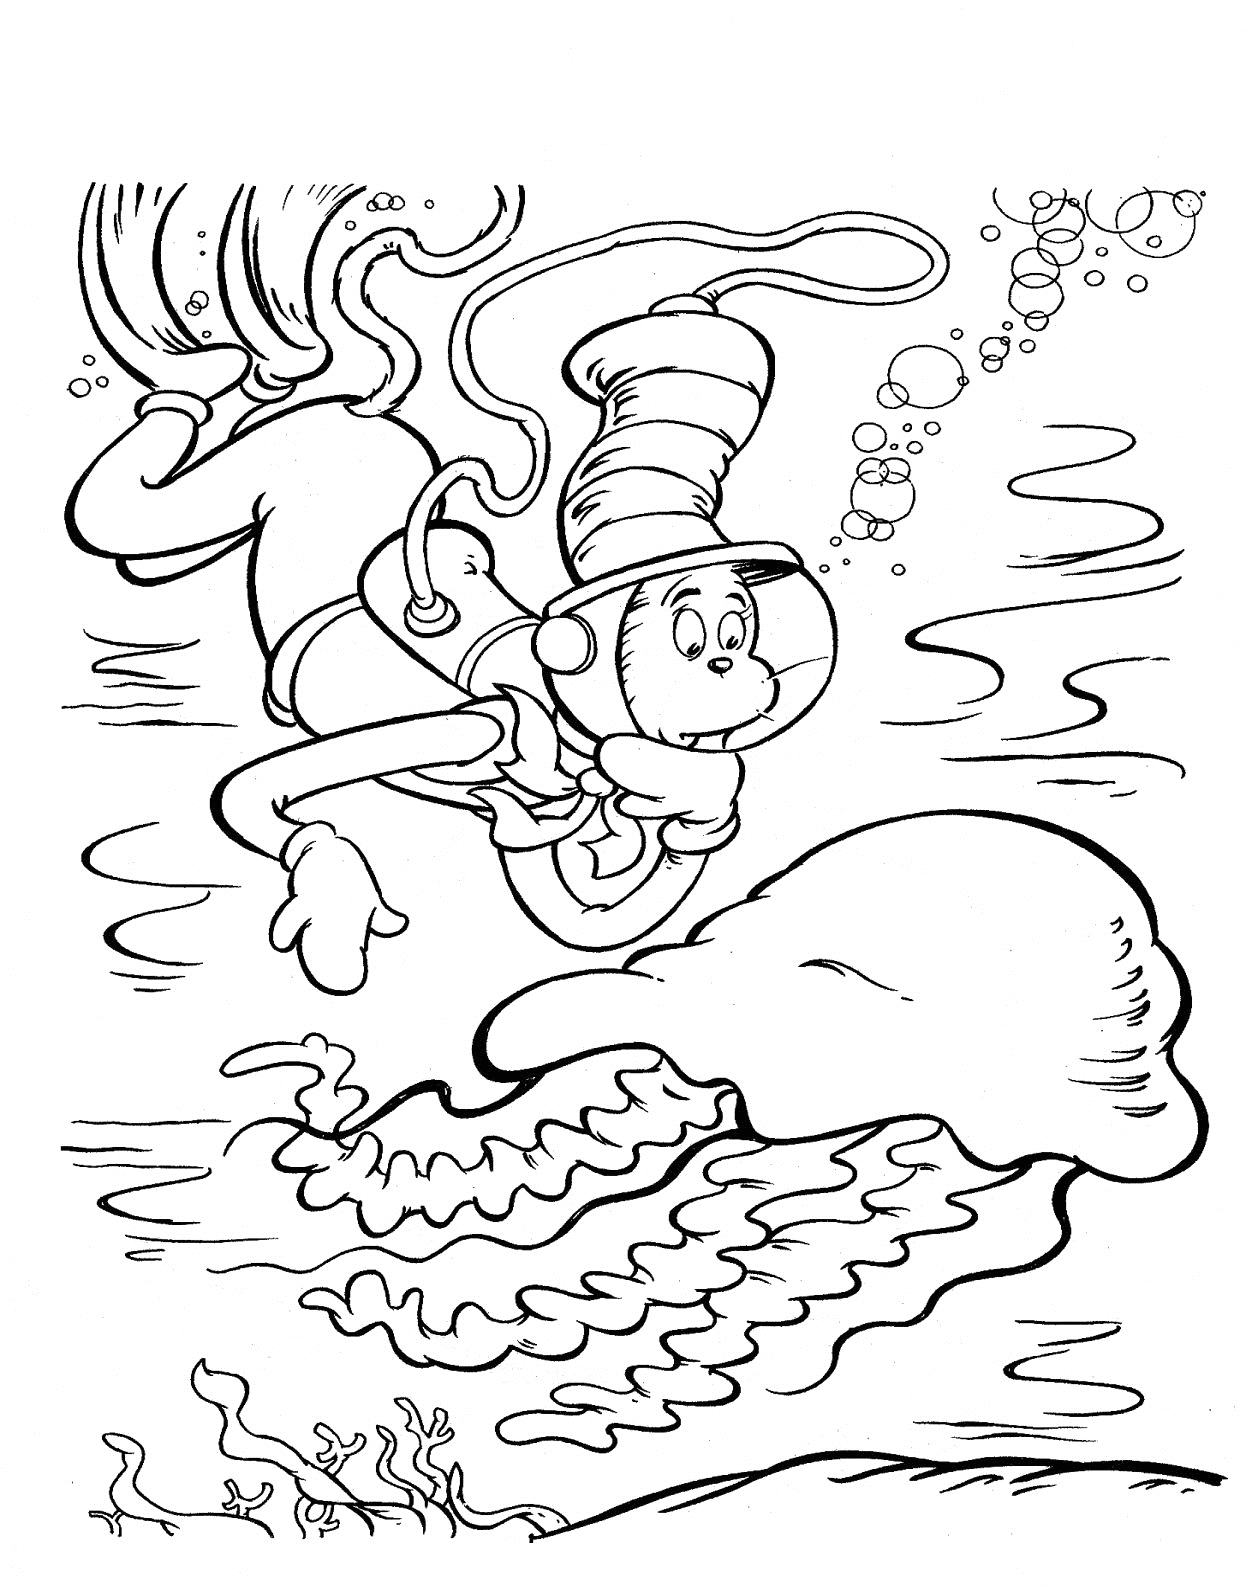 Cat In the Hat Coloring Pages for Preschool Free Printable Cat In the Hat Coloring Pages for Kids